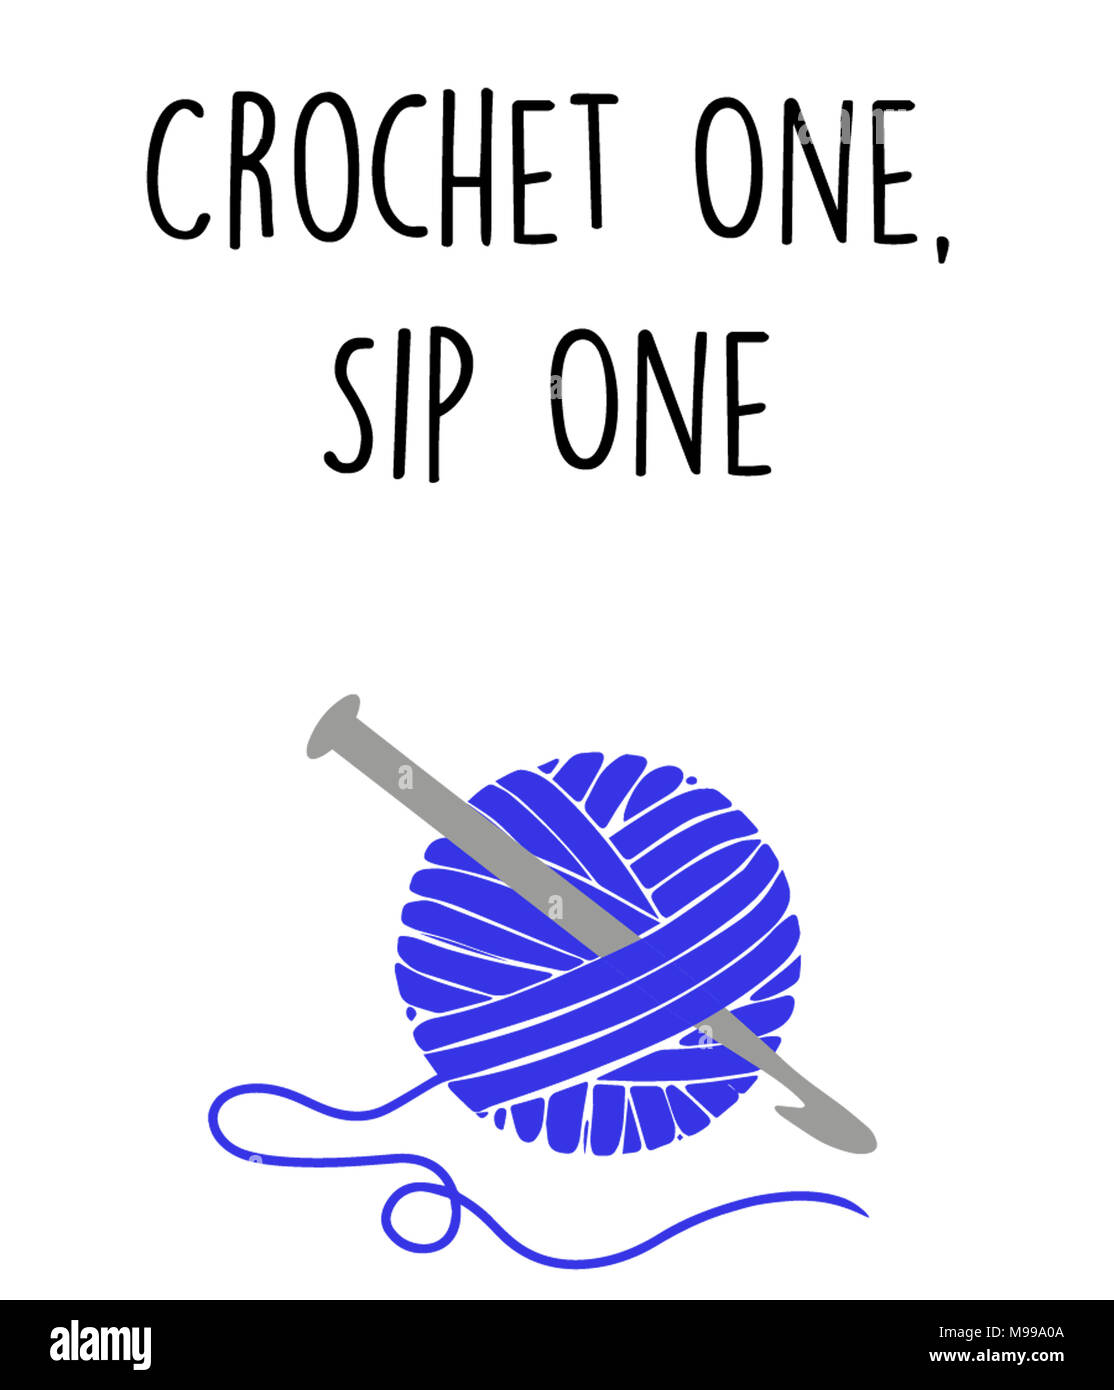 Crochet One, Sip One - Stock Image